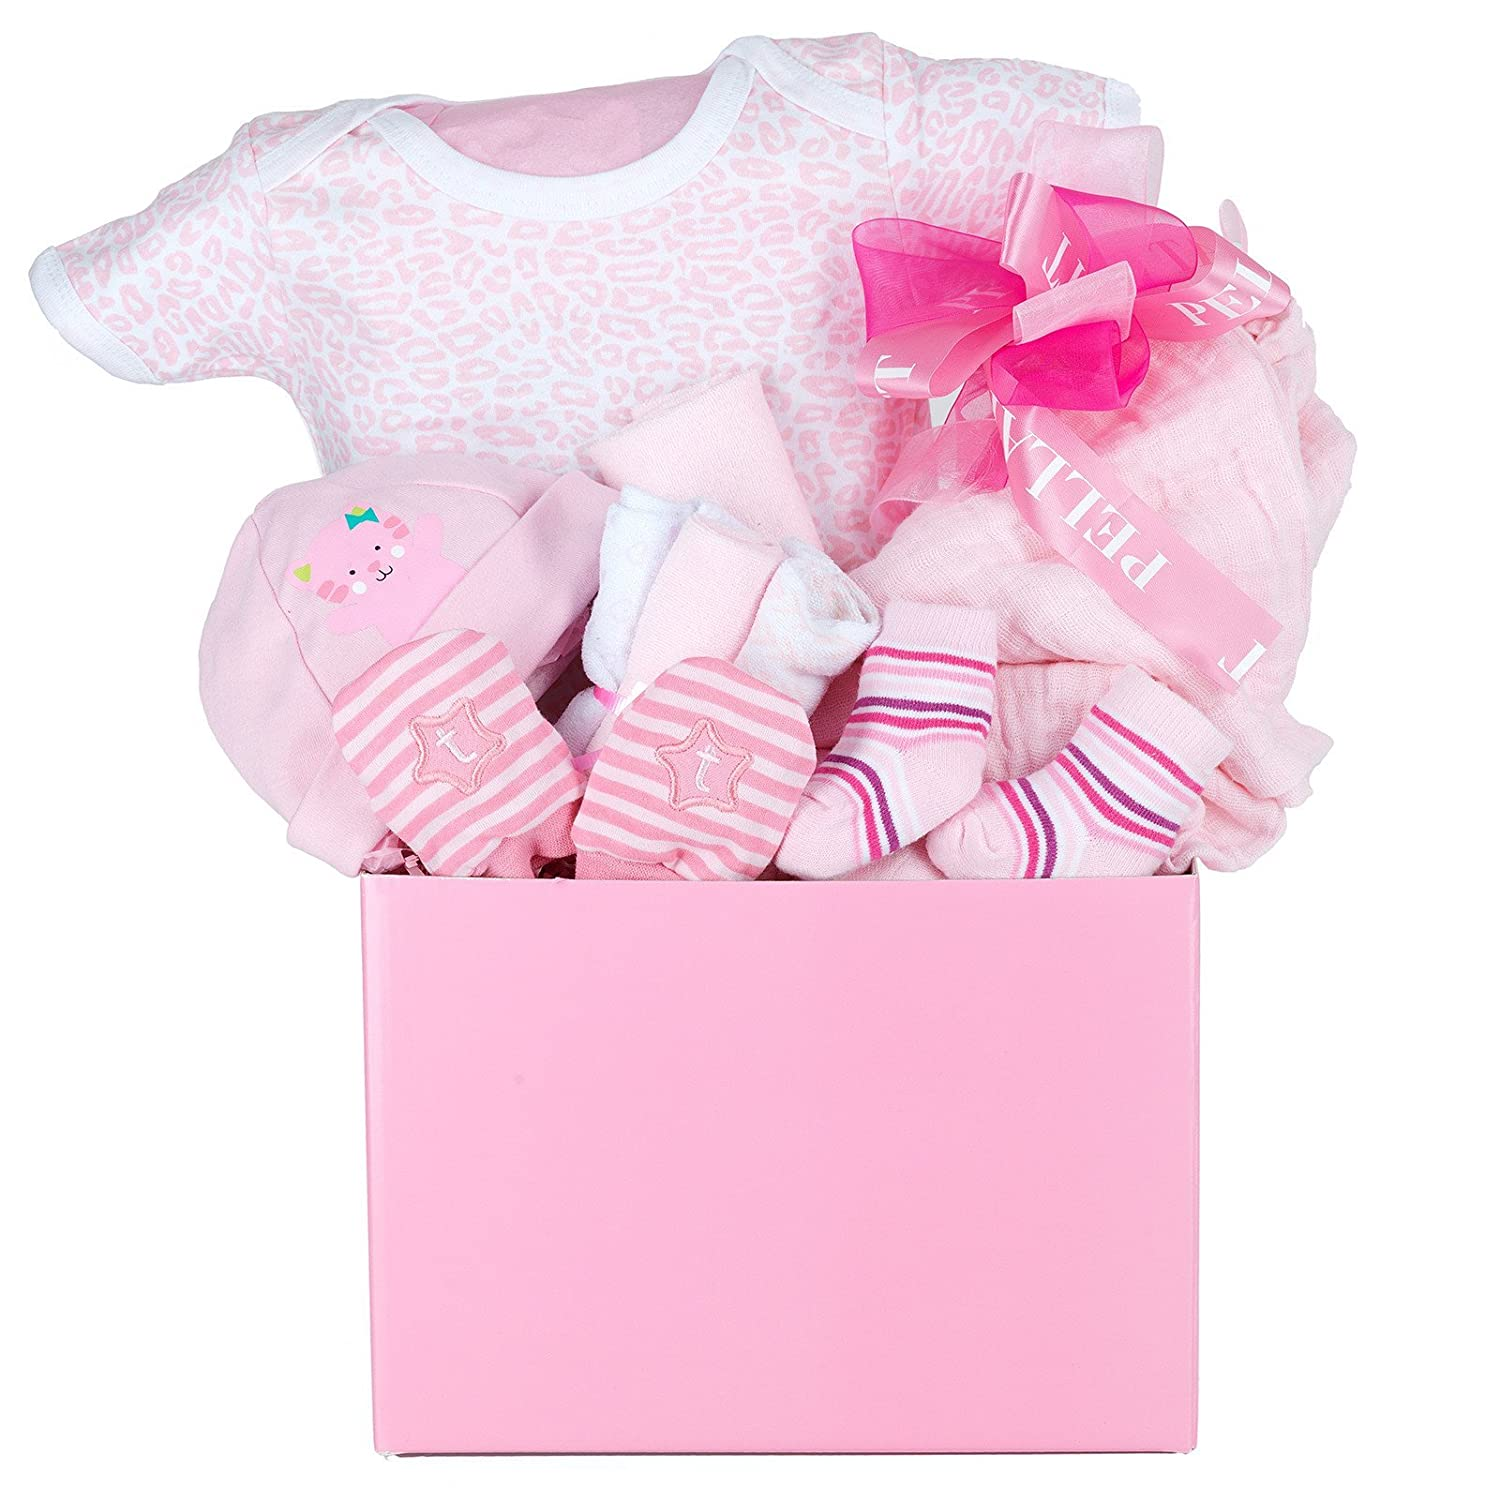 A Little Love Baby Girl Gift Basket with Cotton Onesie, Swaddling Blanket, Hat, Socks, Non-Scratch Mittens and Washclothes Pellatt Cornucopia